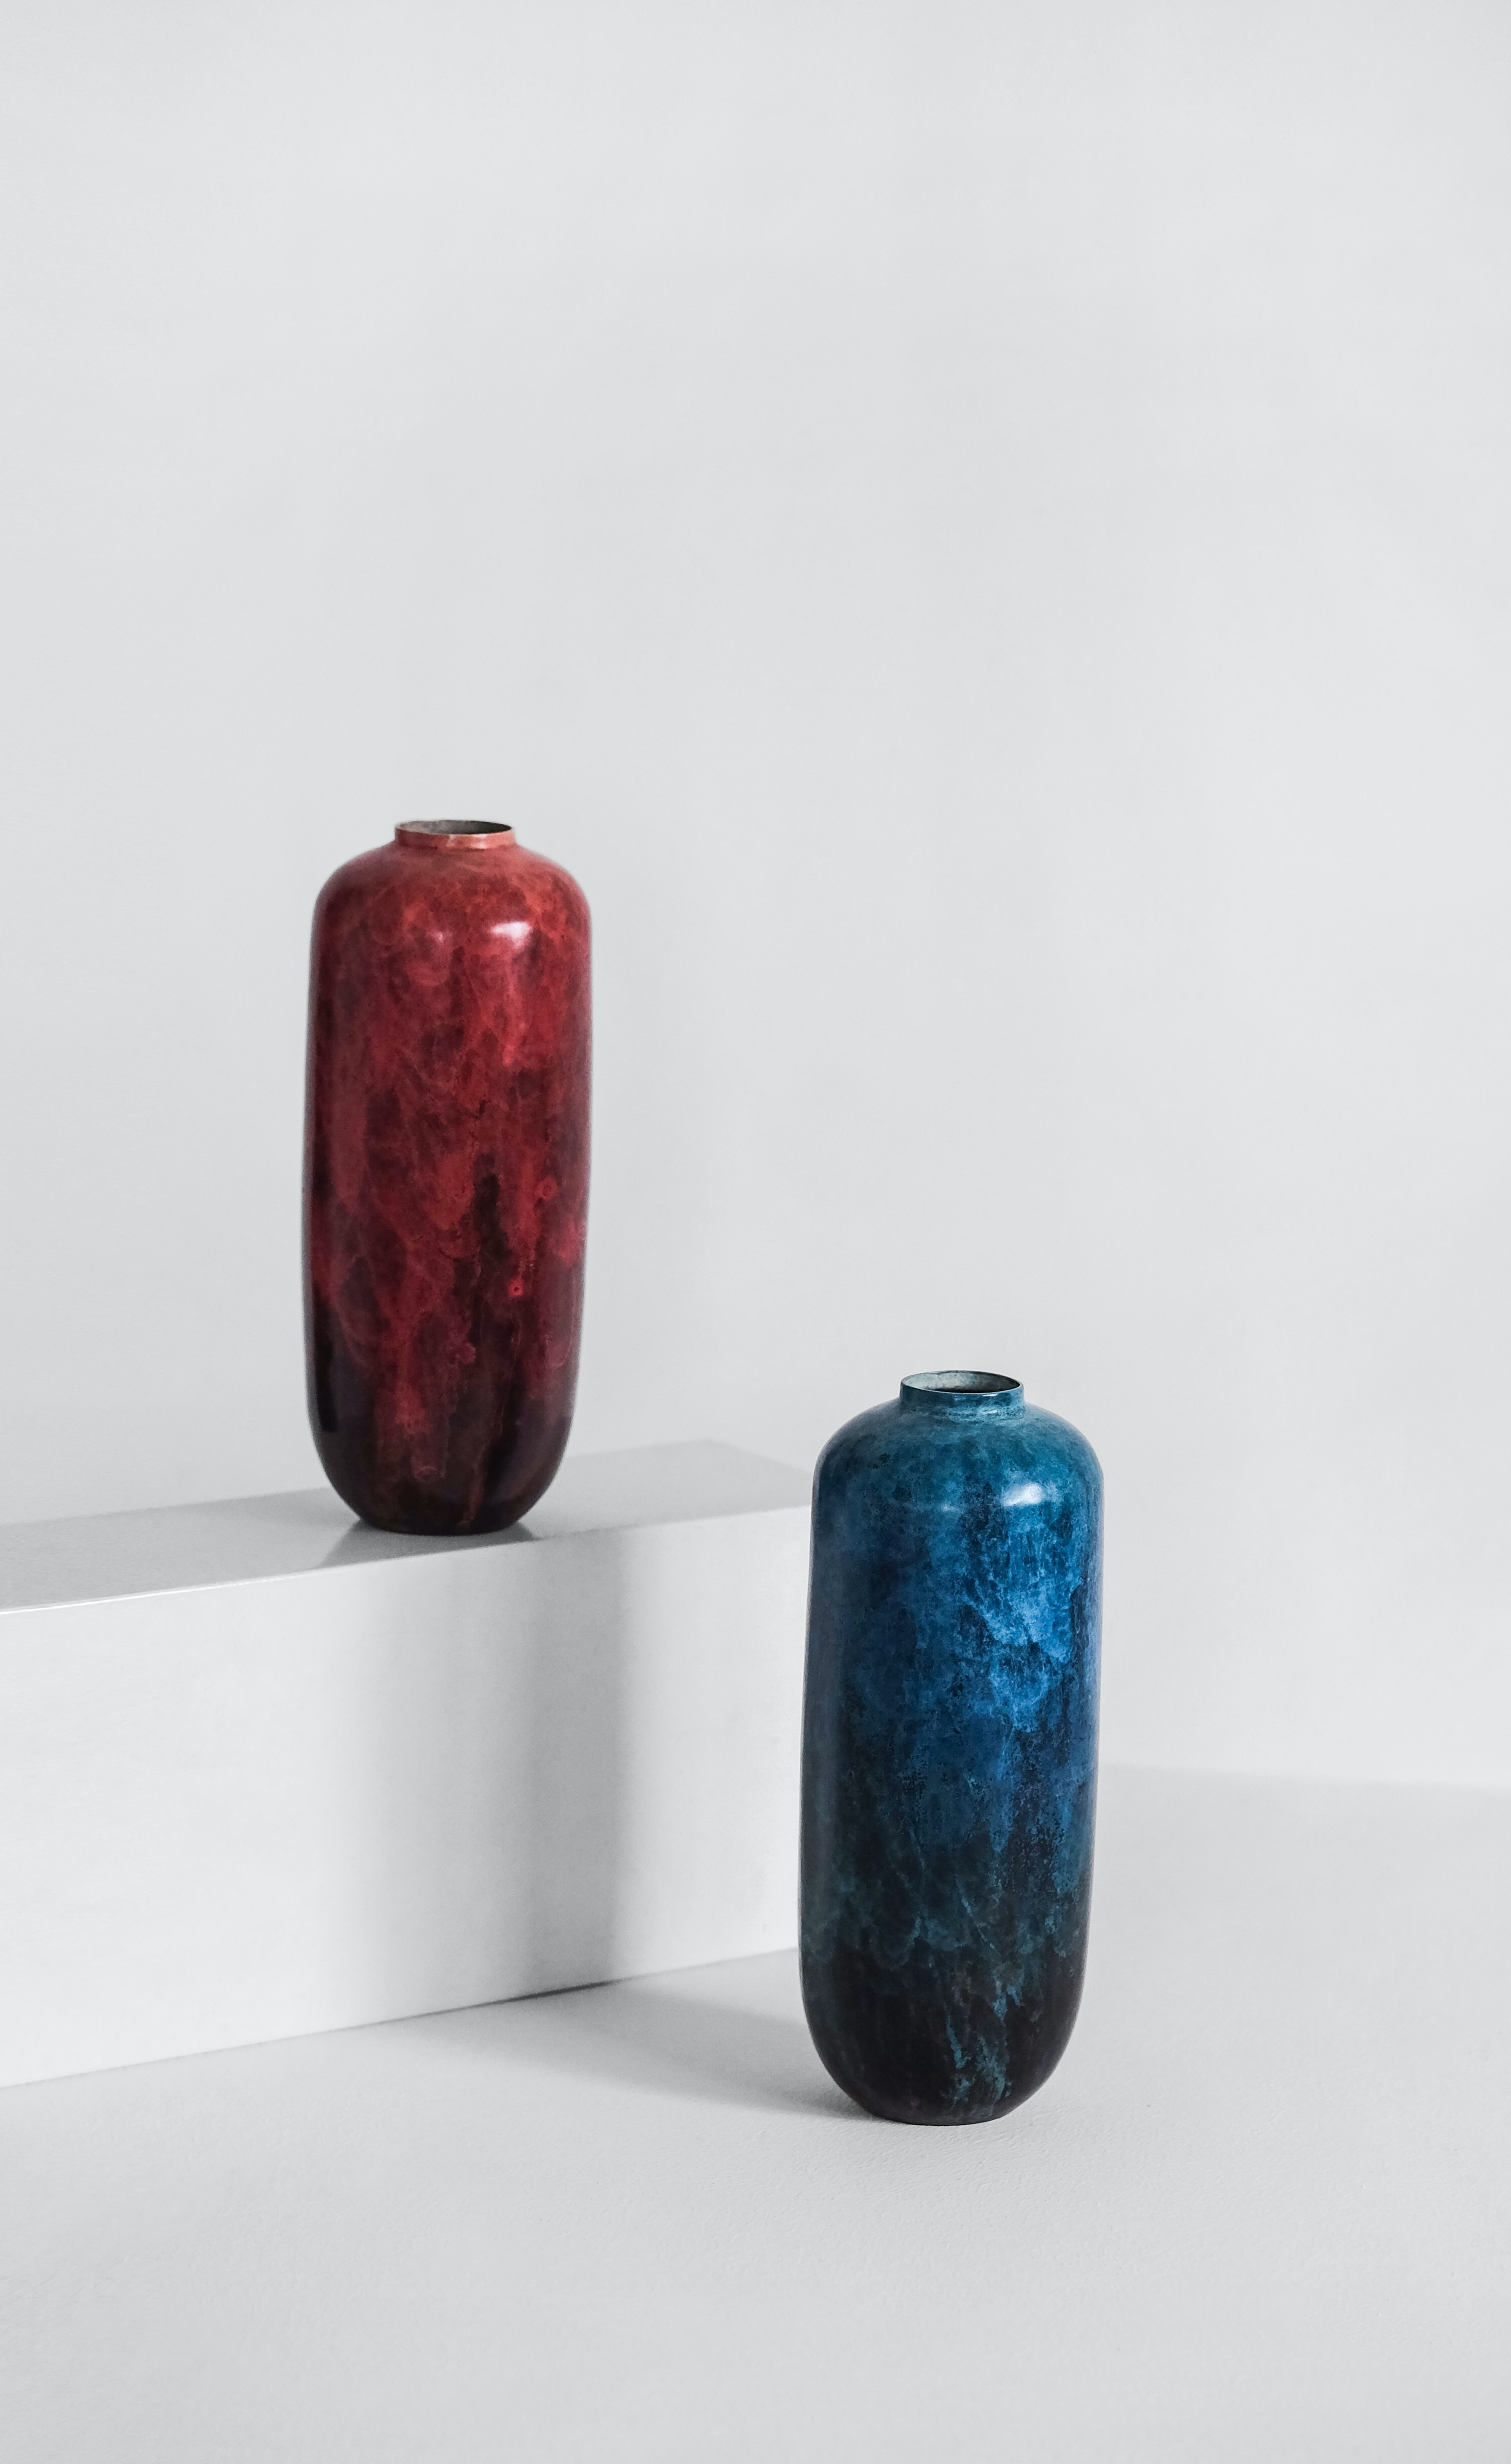 red and blue ceramic jars